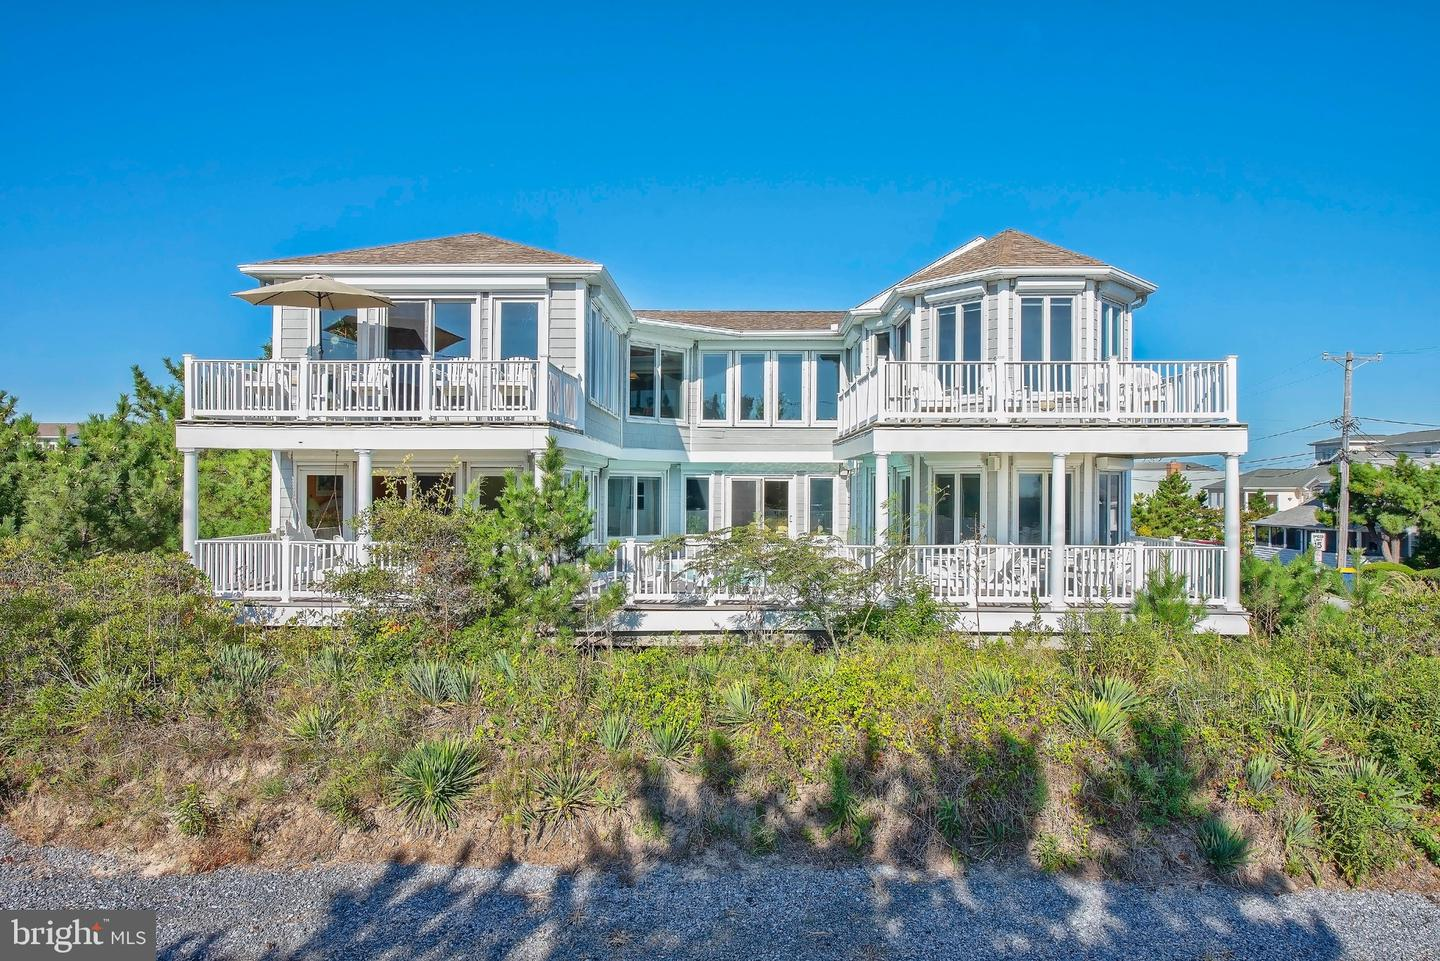 DESU147280-302007866995-2019-08-31-13-42-10 810 Bunting Ave | Fenwick Island, De Real Estate For Sale | MLS# Desu147280  - Suzanne Macnab